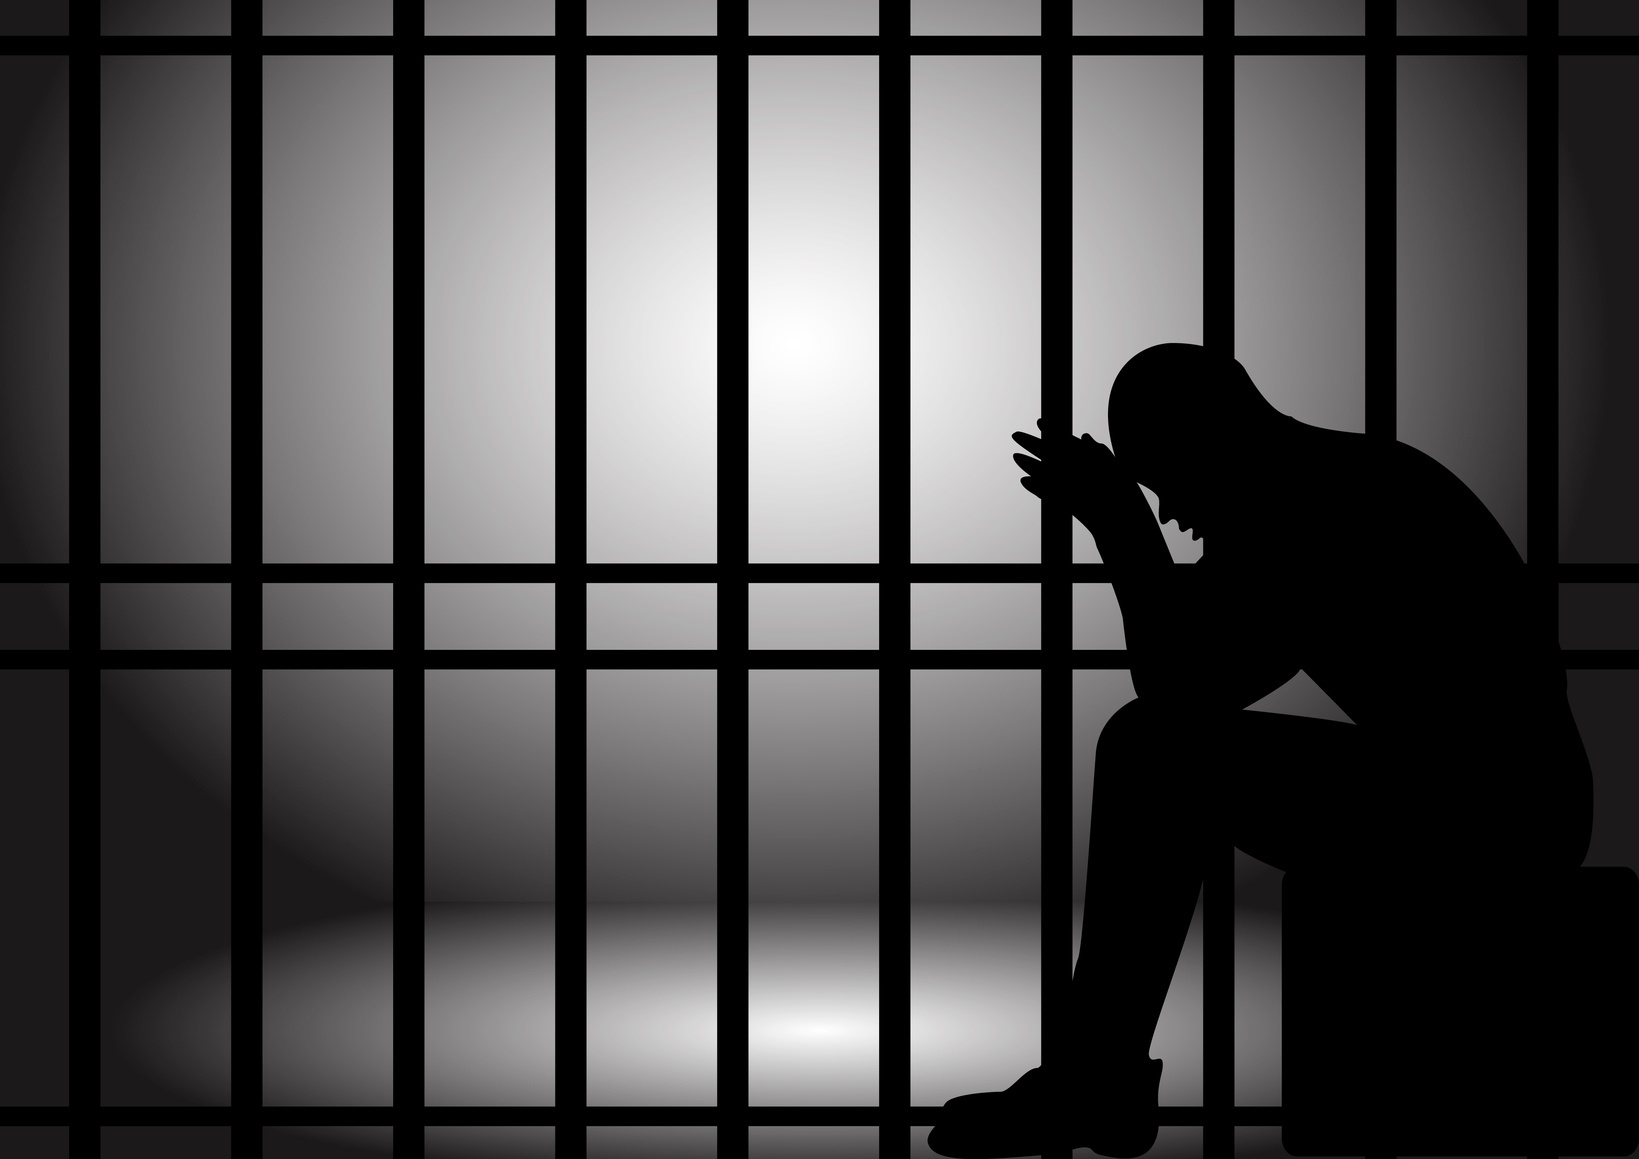 Jail, Imprisonment, Jail to homebuyers, Regulator in Real Estate, Defaulting homebuyers, India real estate news, Indian property market, Track2Realty, Builders exploiting homebuyers